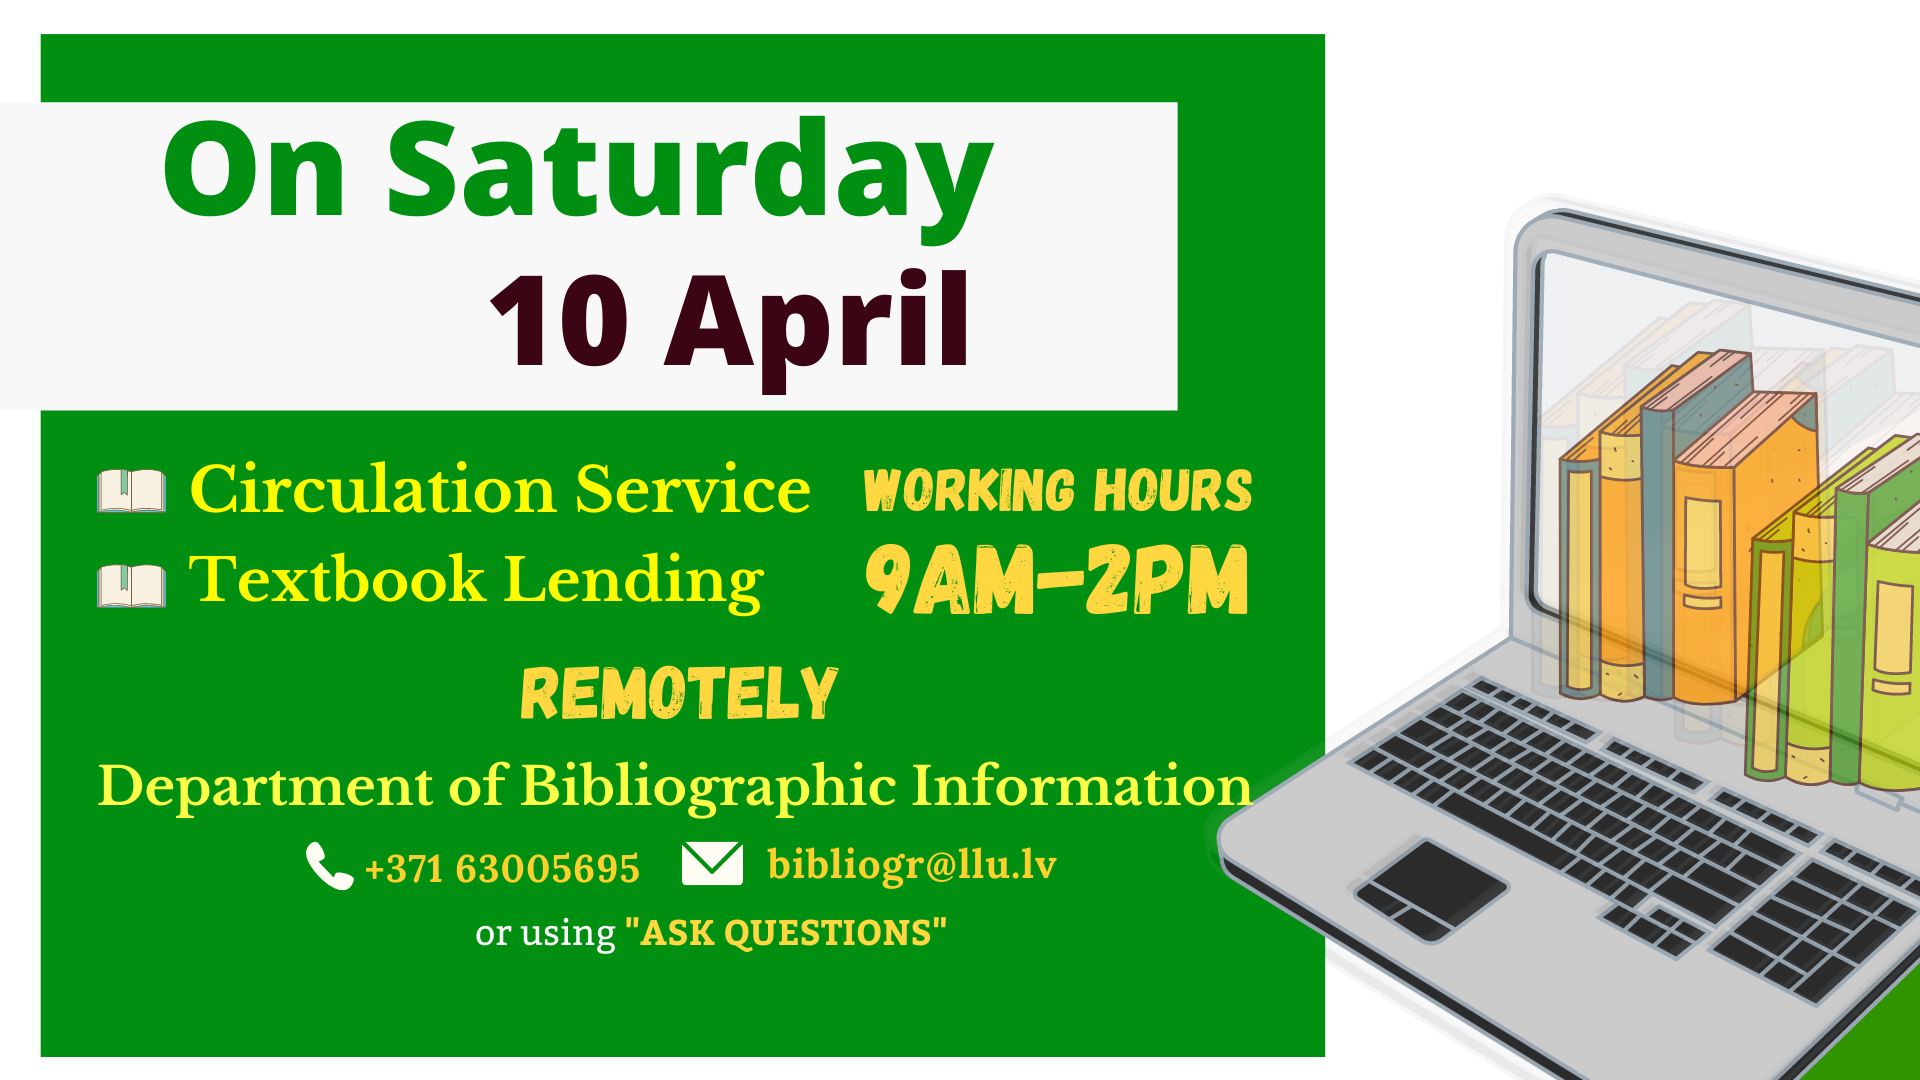 On Saturday 10 April  Fundamental Library of the Latvia University of Life Sciences and Technologies  is open from 9am until 2pm.